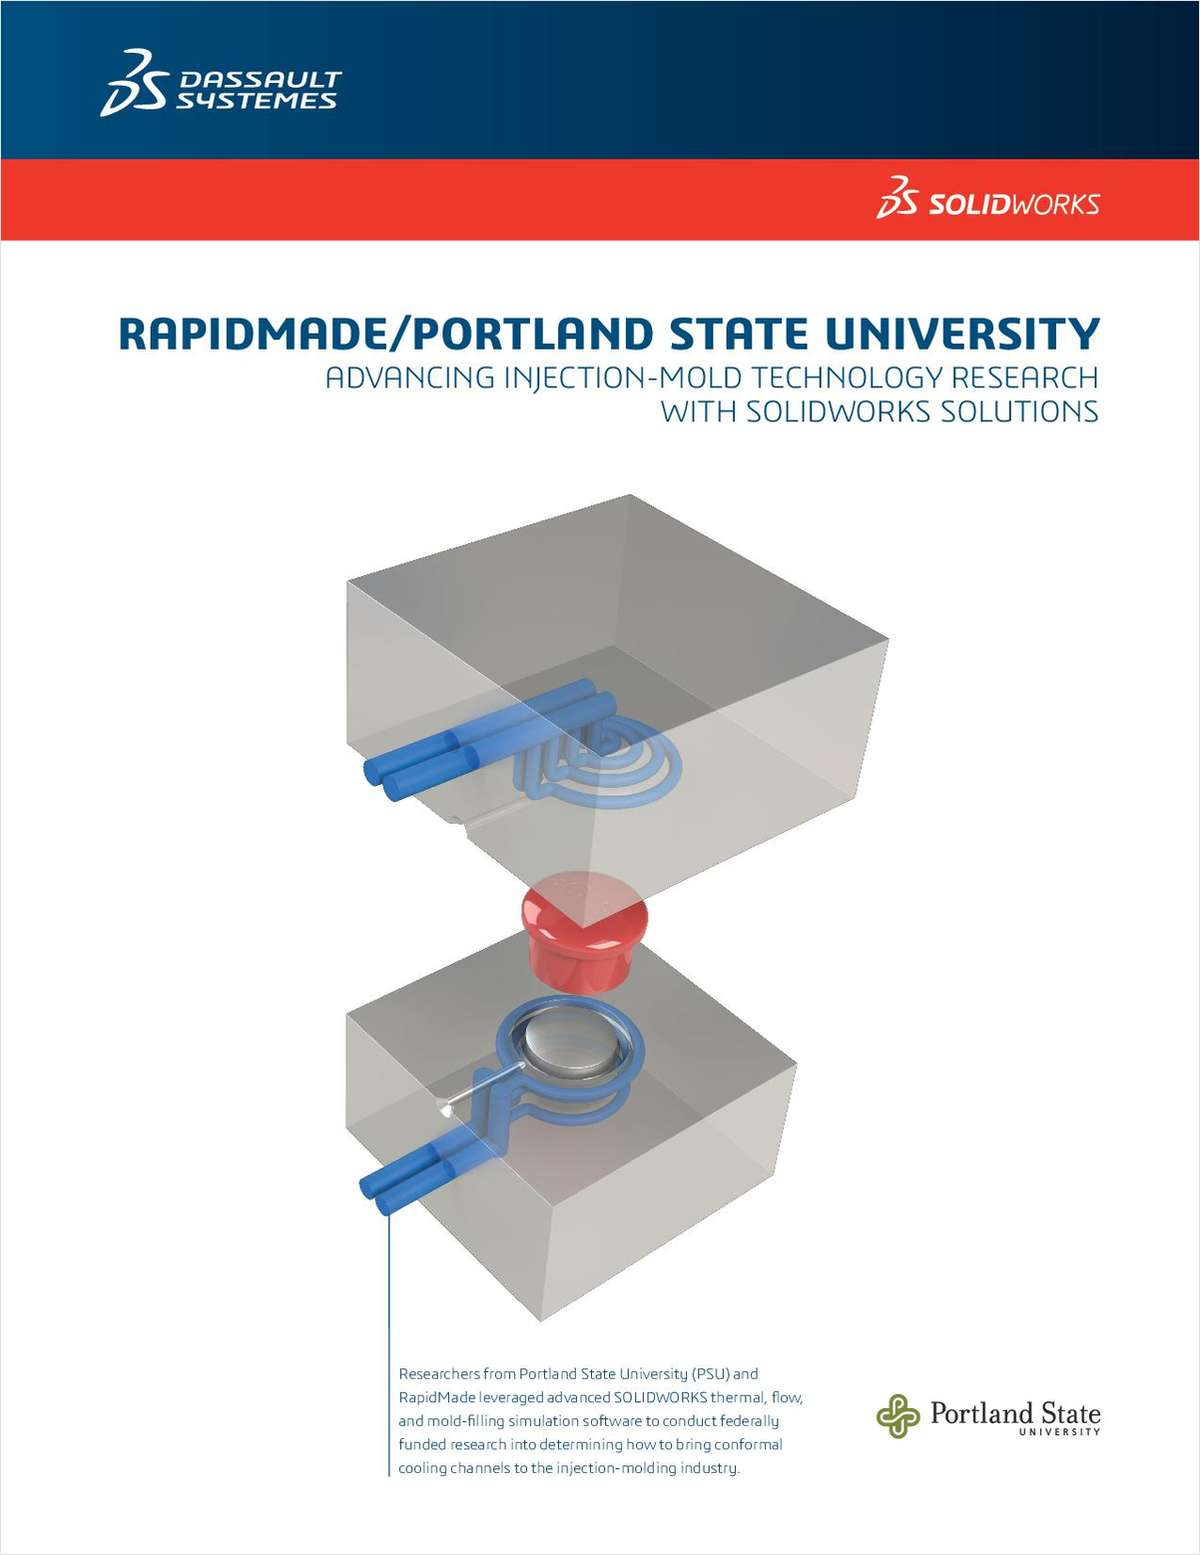 Breakthrough Advances Injection-Mold Manufacturing